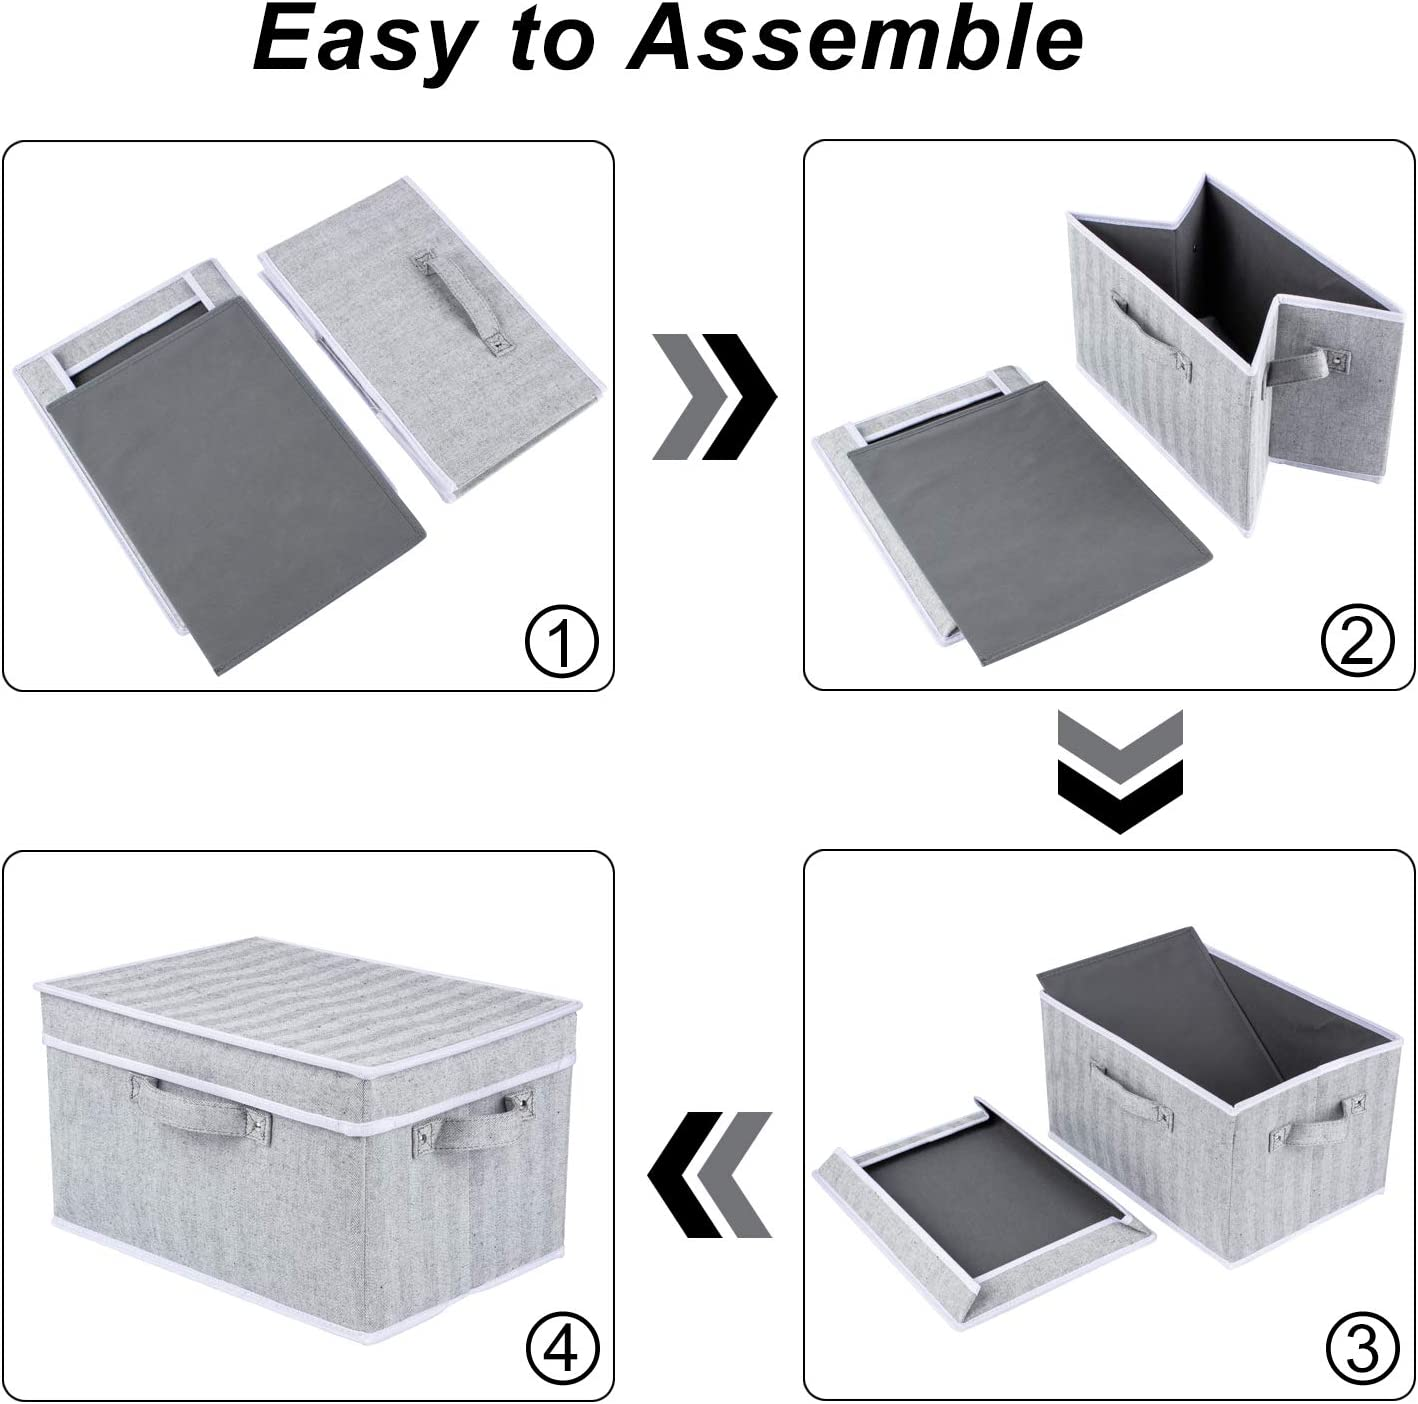 Grey Zilink Storage Bins for Shelf Decorative Storage Boxes with lids Stack-able Storage Baskets for Closet with Handles for Home Office Storage Set of 3